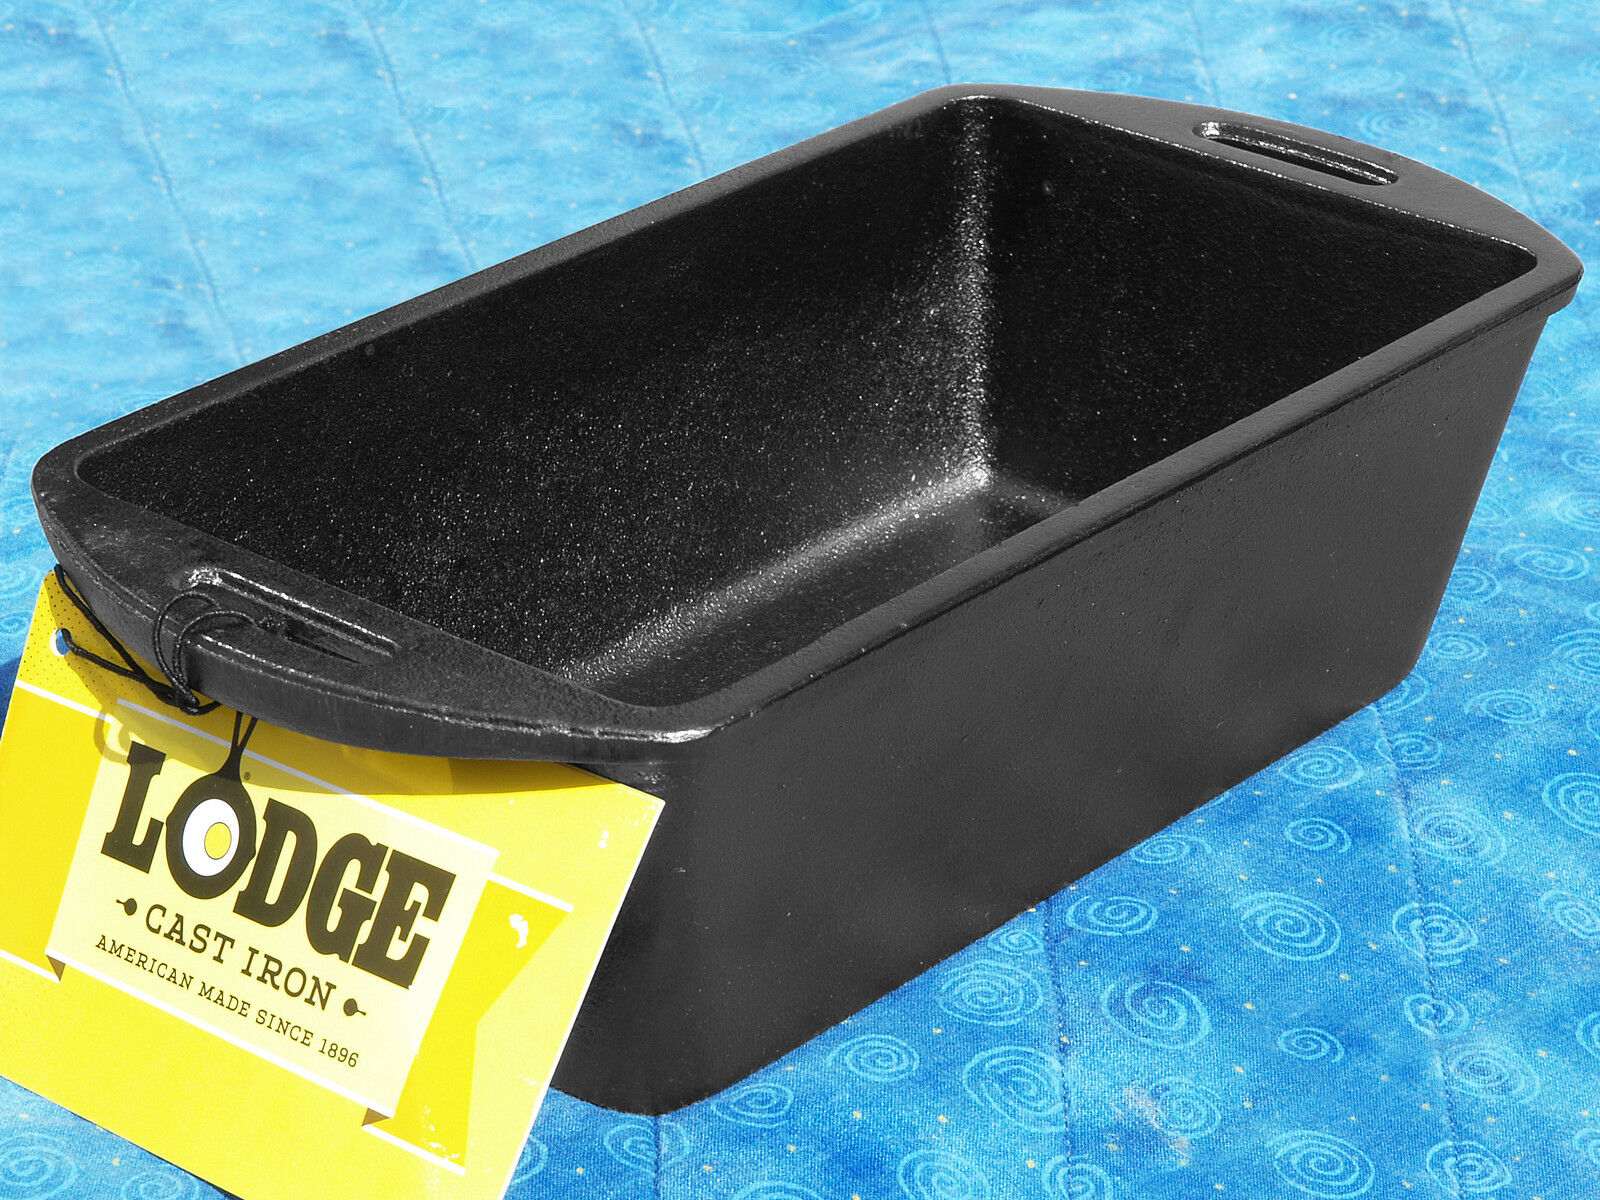 1 Lodge L4LP3 Cast Iron Bread Baking Loaf Pan seasoned FREE SHIPPING meatloaf 2